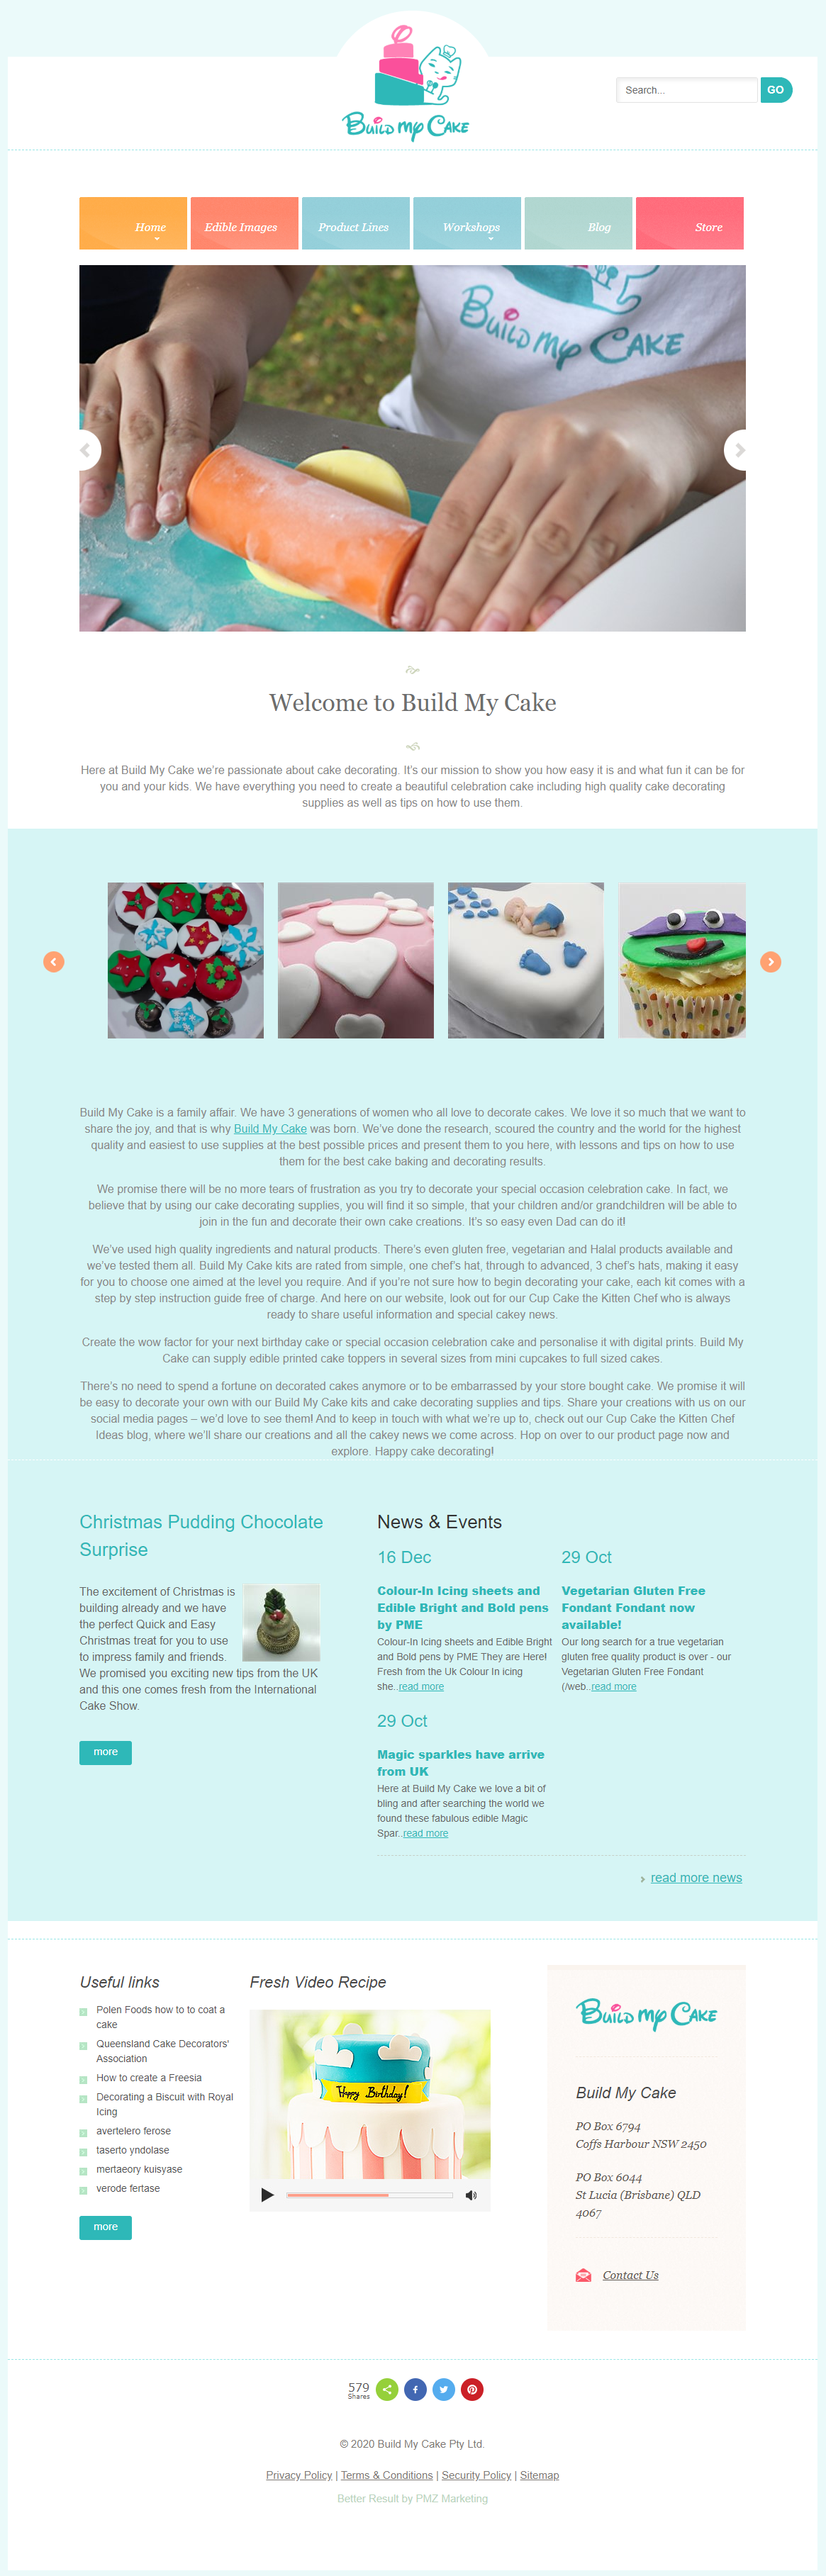 Build My Cake :: PMZ Markeitng Client